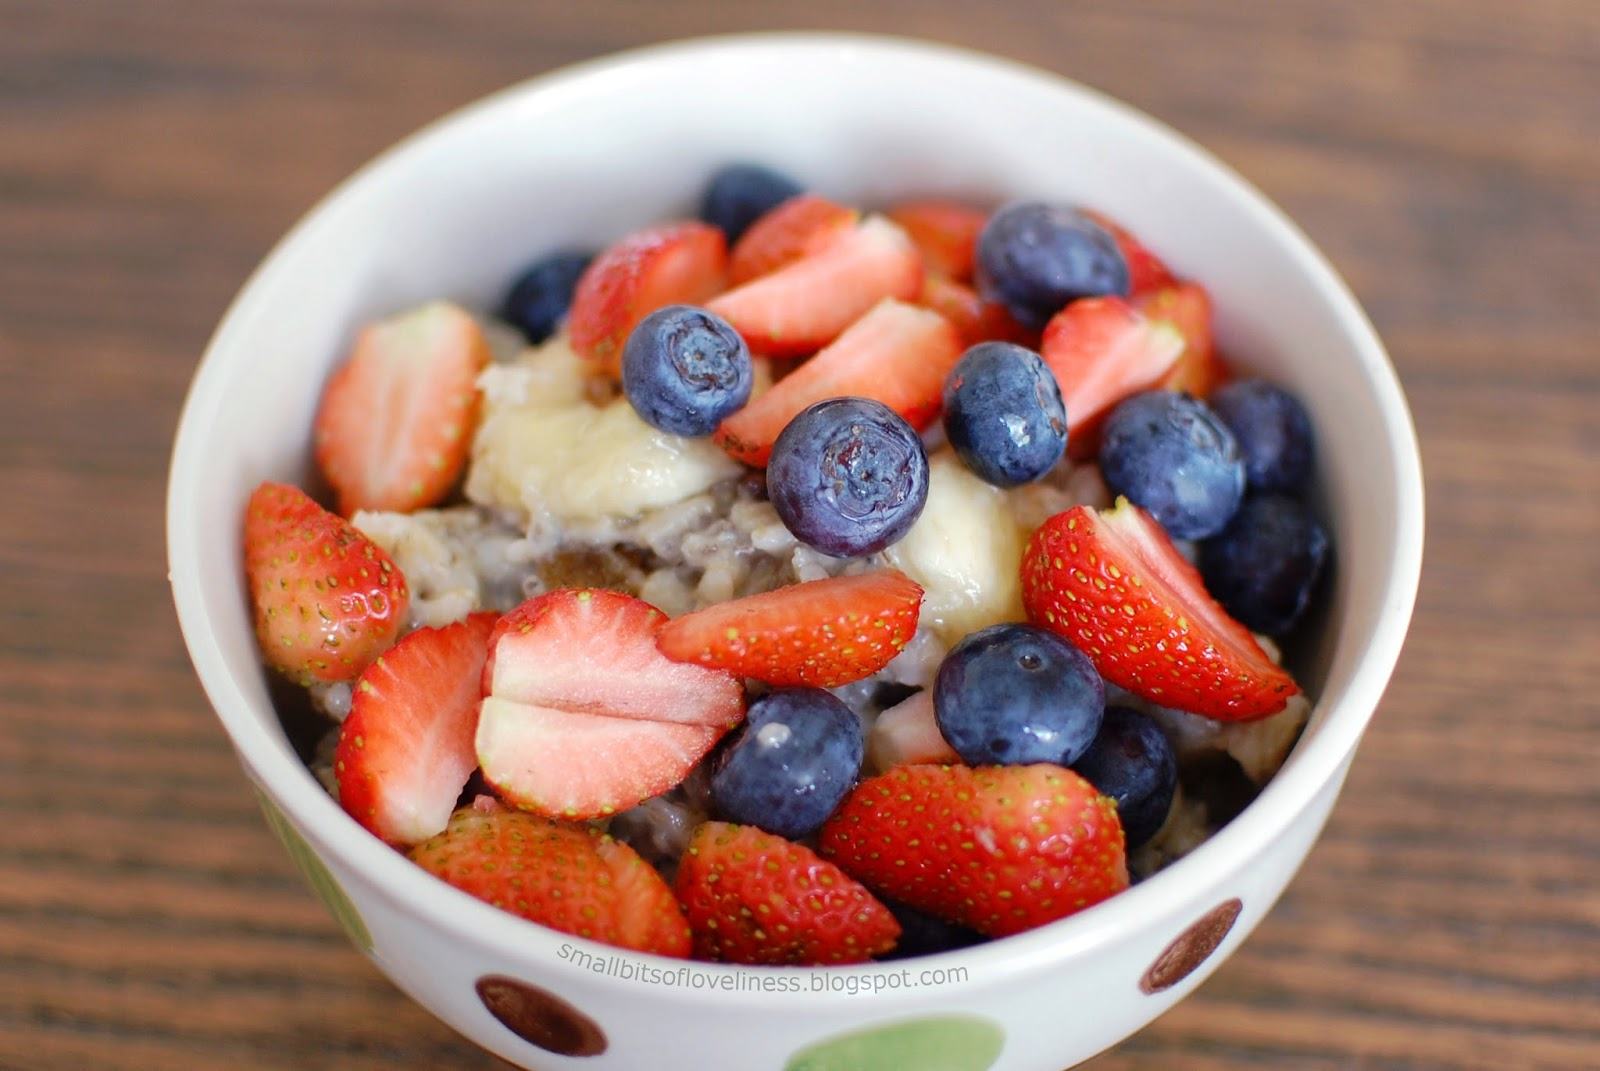 Oatmeal Porridge with Banana Raisins Chia Seeds Blueberries Strawberries